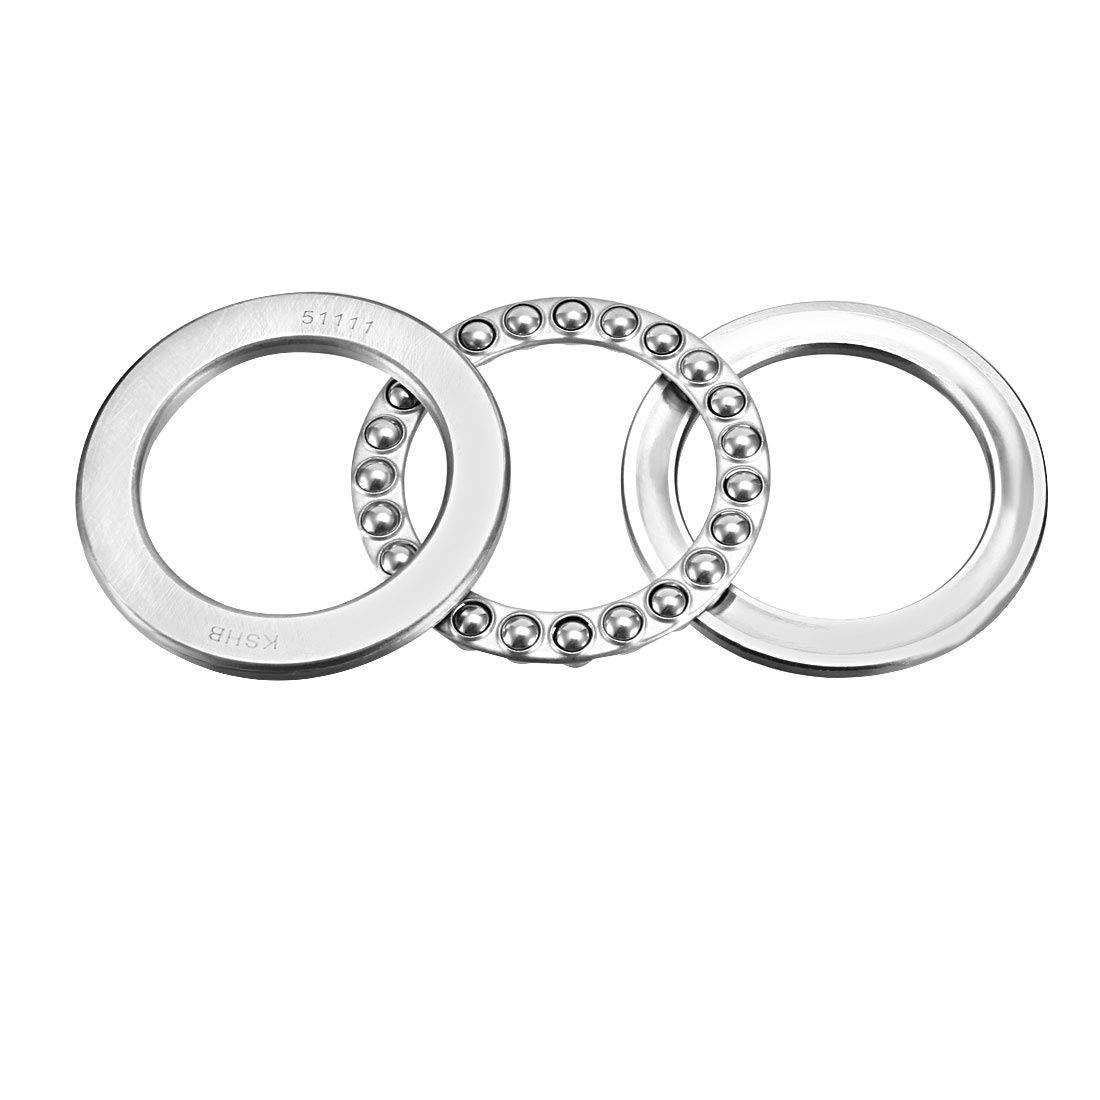 sourcingmap 51111 Single Direction Thrust Ball Bearings 55mm x 78mm x 16mm Chrome Steel a18062000ux0251